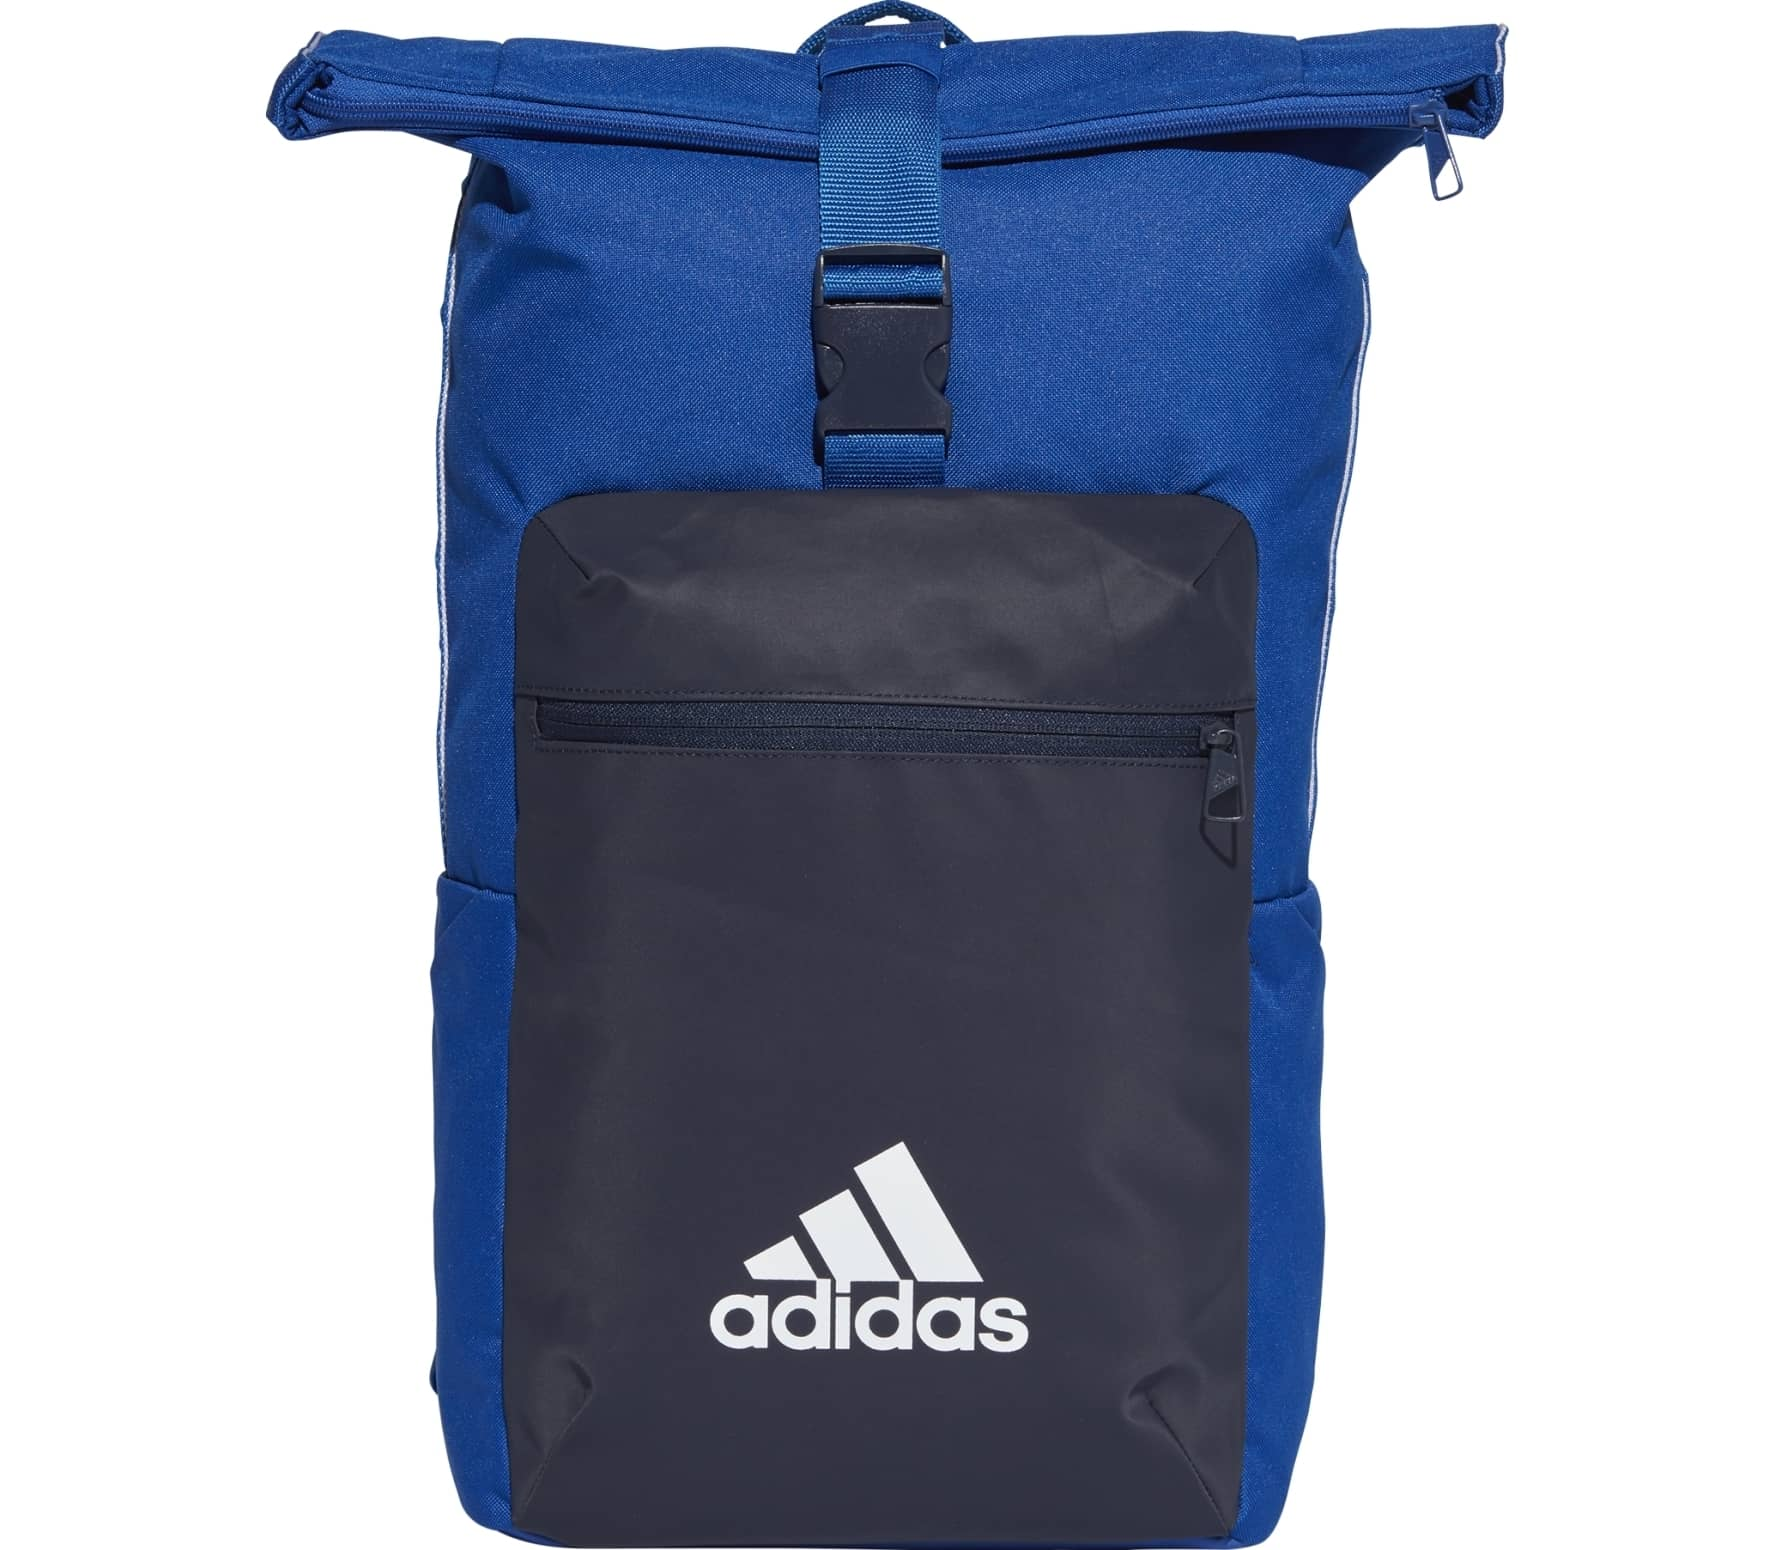 Adidas - Athlete Core training backpack (dark blue) - buy it at the ... 86fe2f7d3f8b8